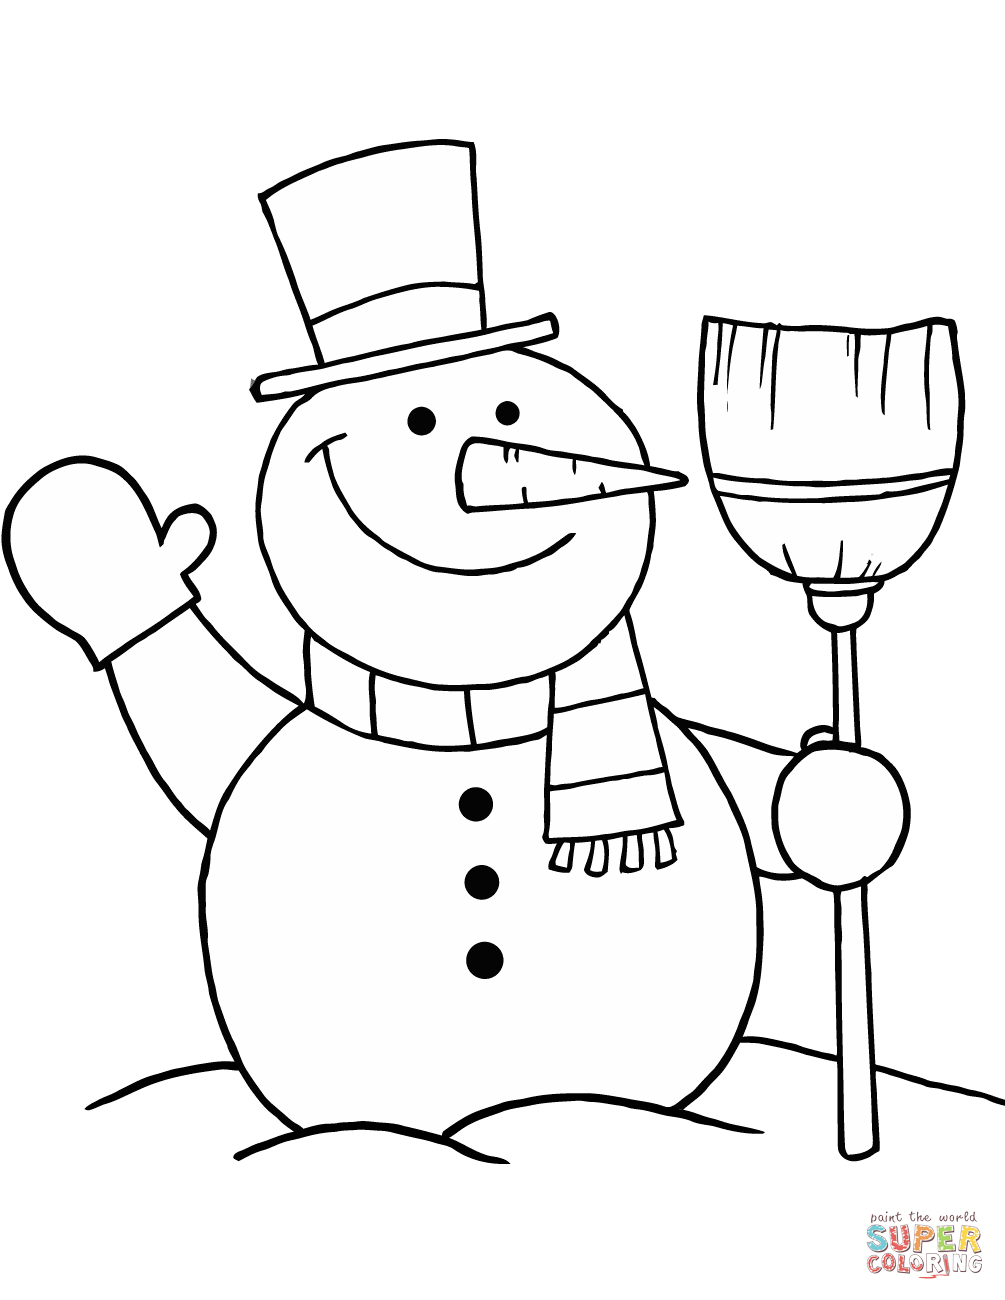 Snowman With Broom Coloring Page   Free Printable Coloring Pages - Printable Snowman Puzzle